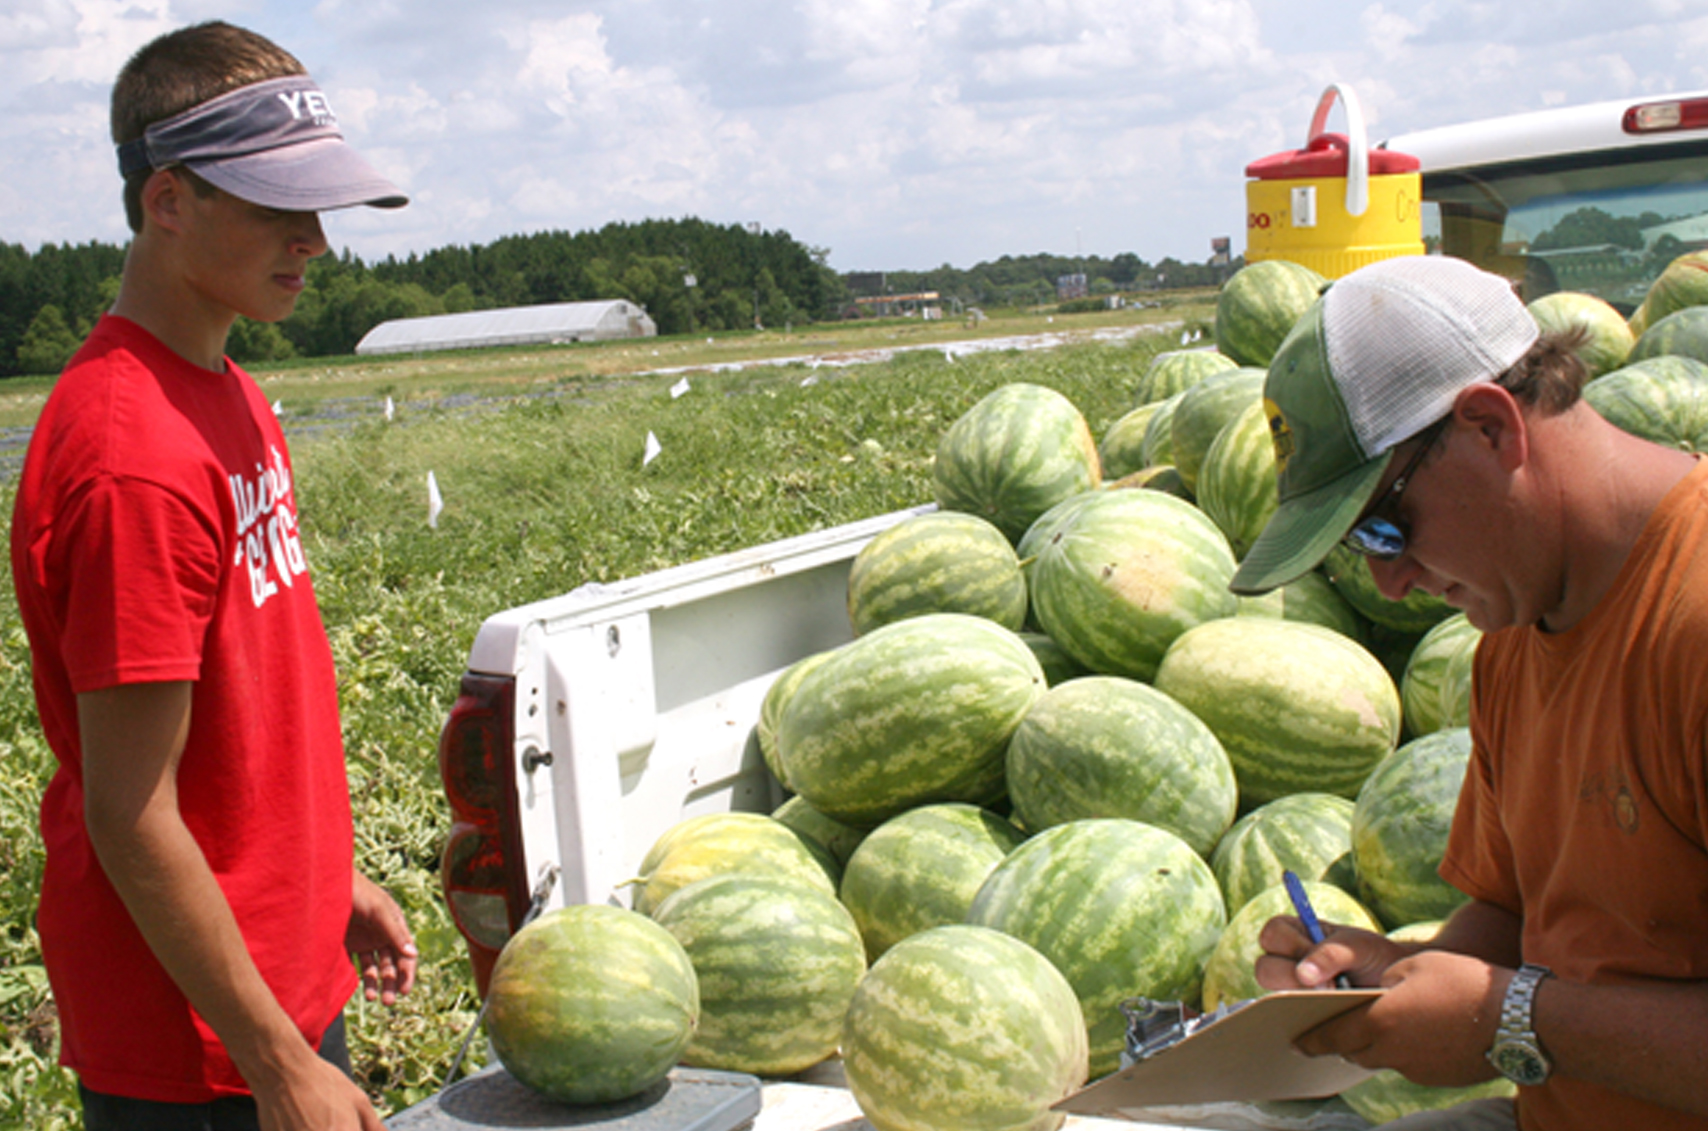 Robert Ames, right, records the weight of a watermelon as fellow student worker Beau Lamb watches. Both work for UGA Vegetable Horticulturist Tim Coolong on the Tifton Campus.